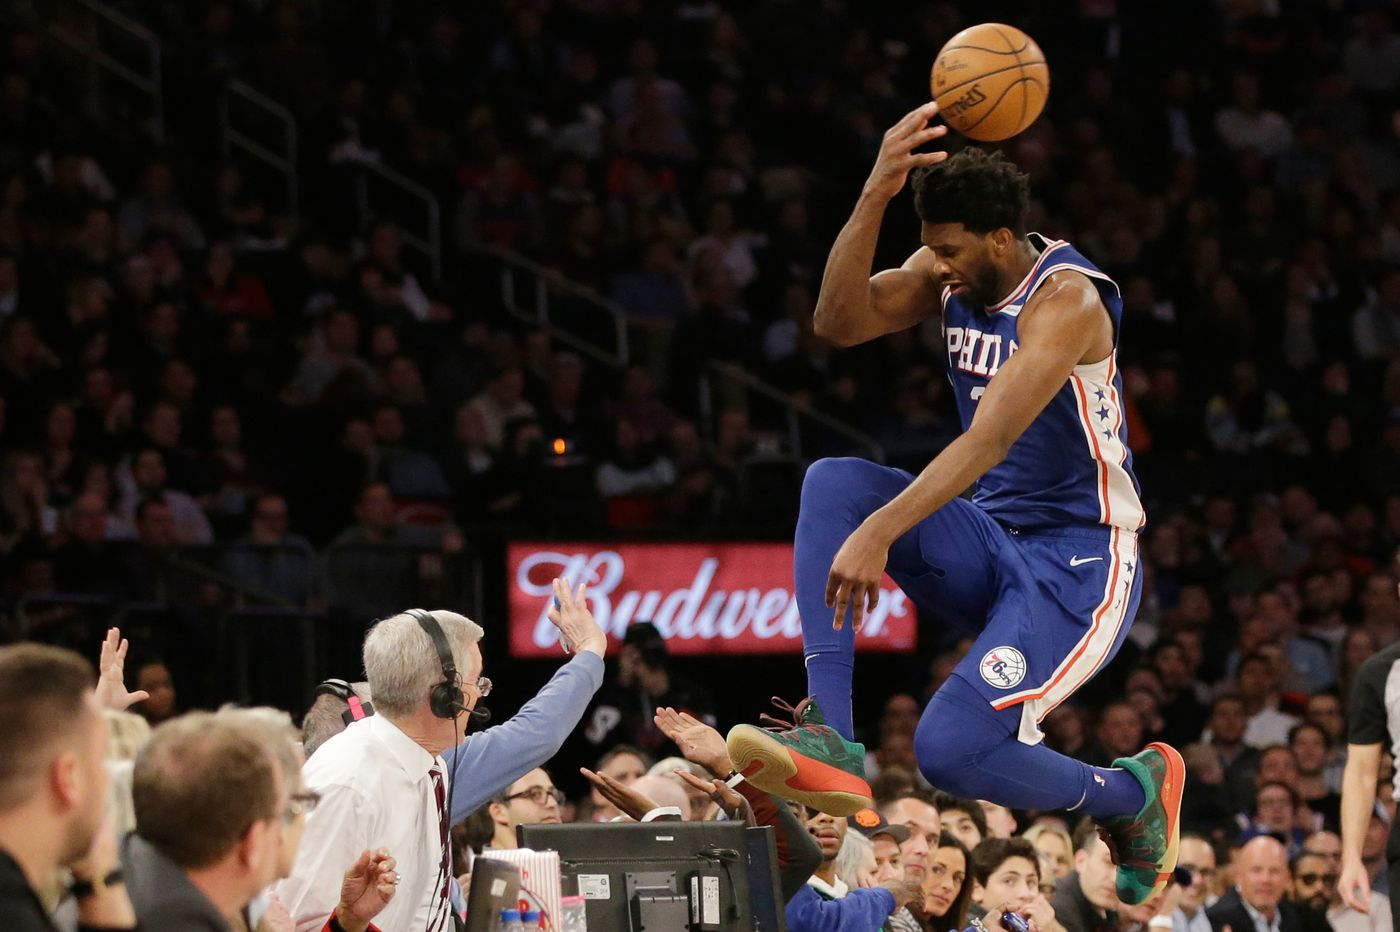 Joel Embiid says he always plays hard. The Sixers need him to start playing smart. | Mike Sielski